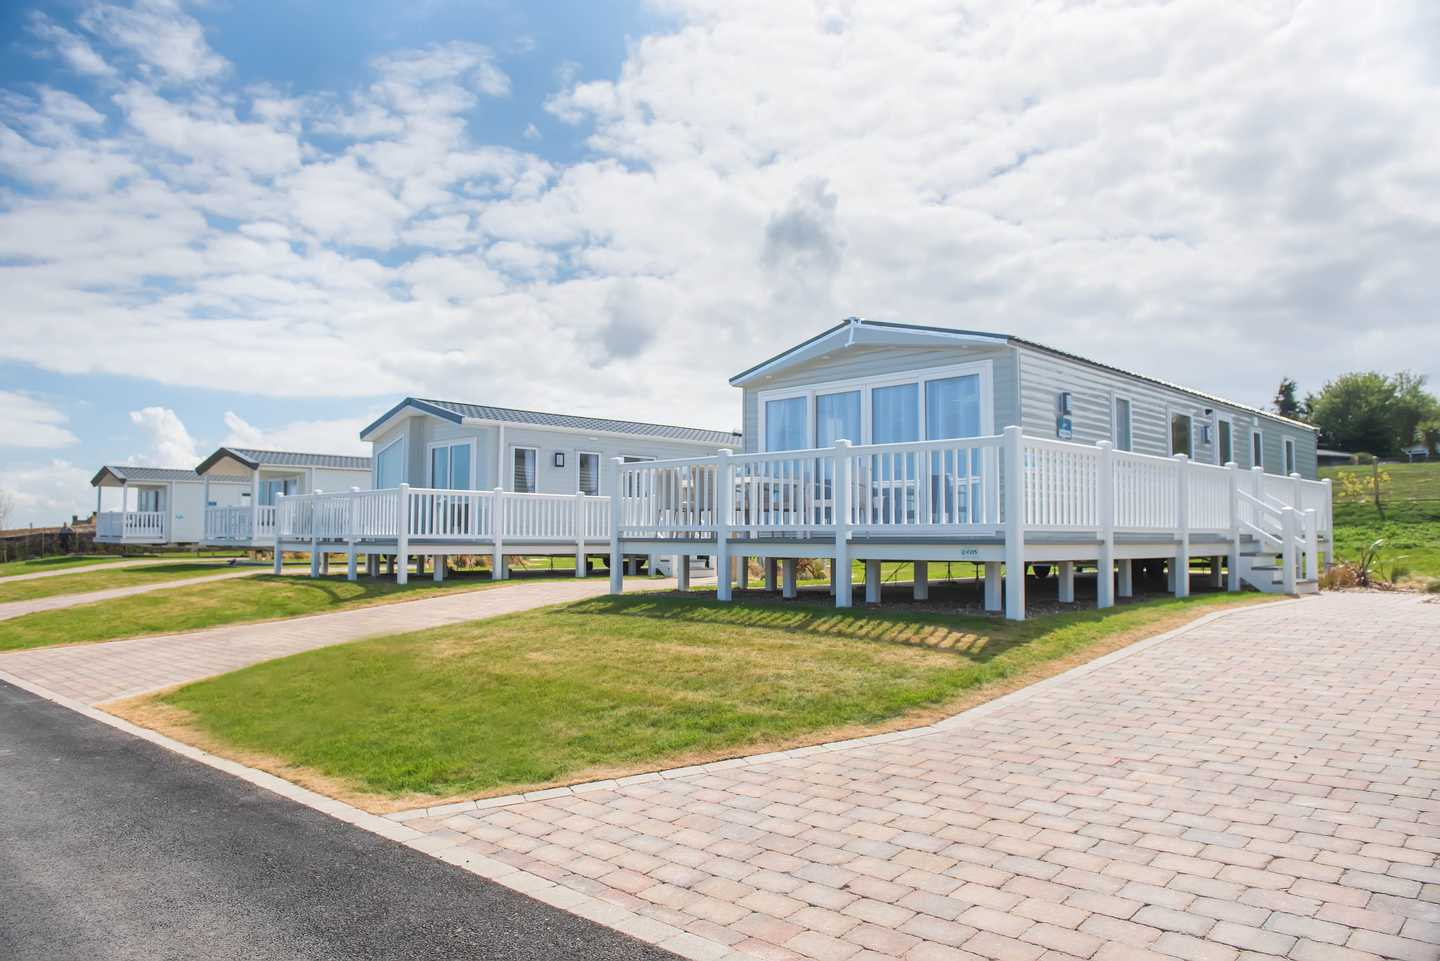 View of several New Platinum with decking at Lakeview caravans